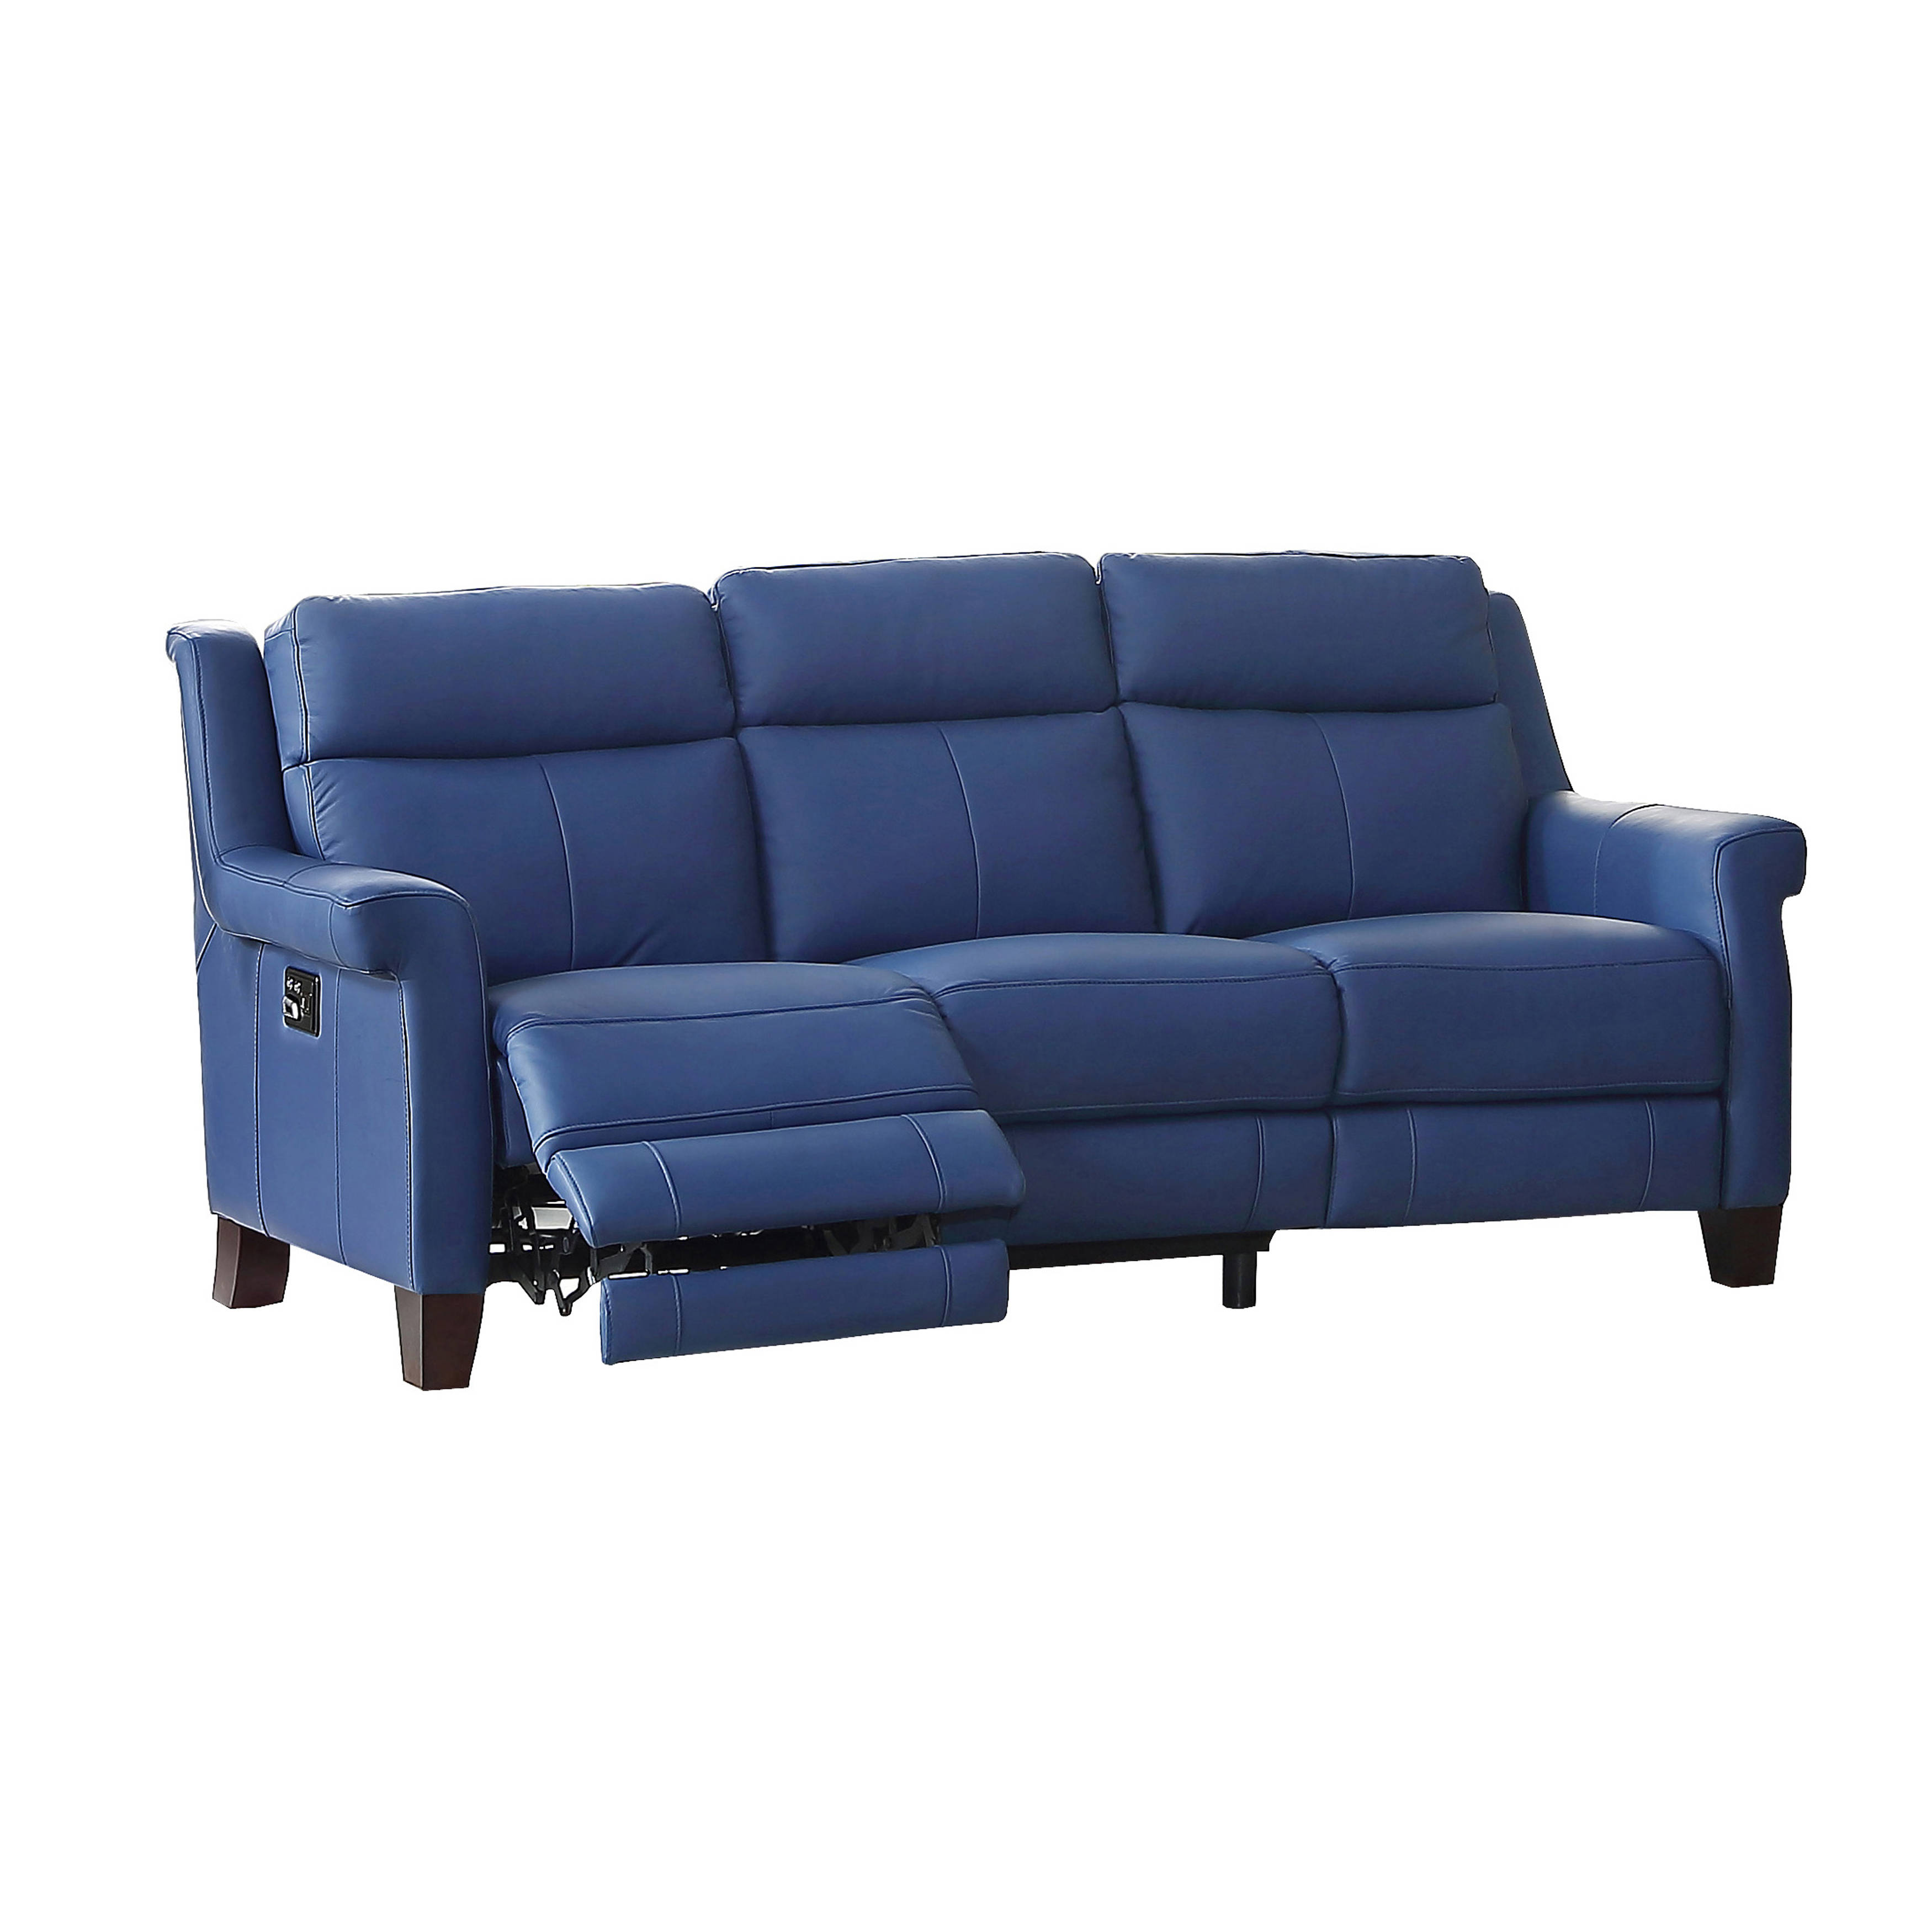 Terrific Overly Power Reclining Sofa Gmtry Best Dining Table And Chair Ideas Images Gmtryco